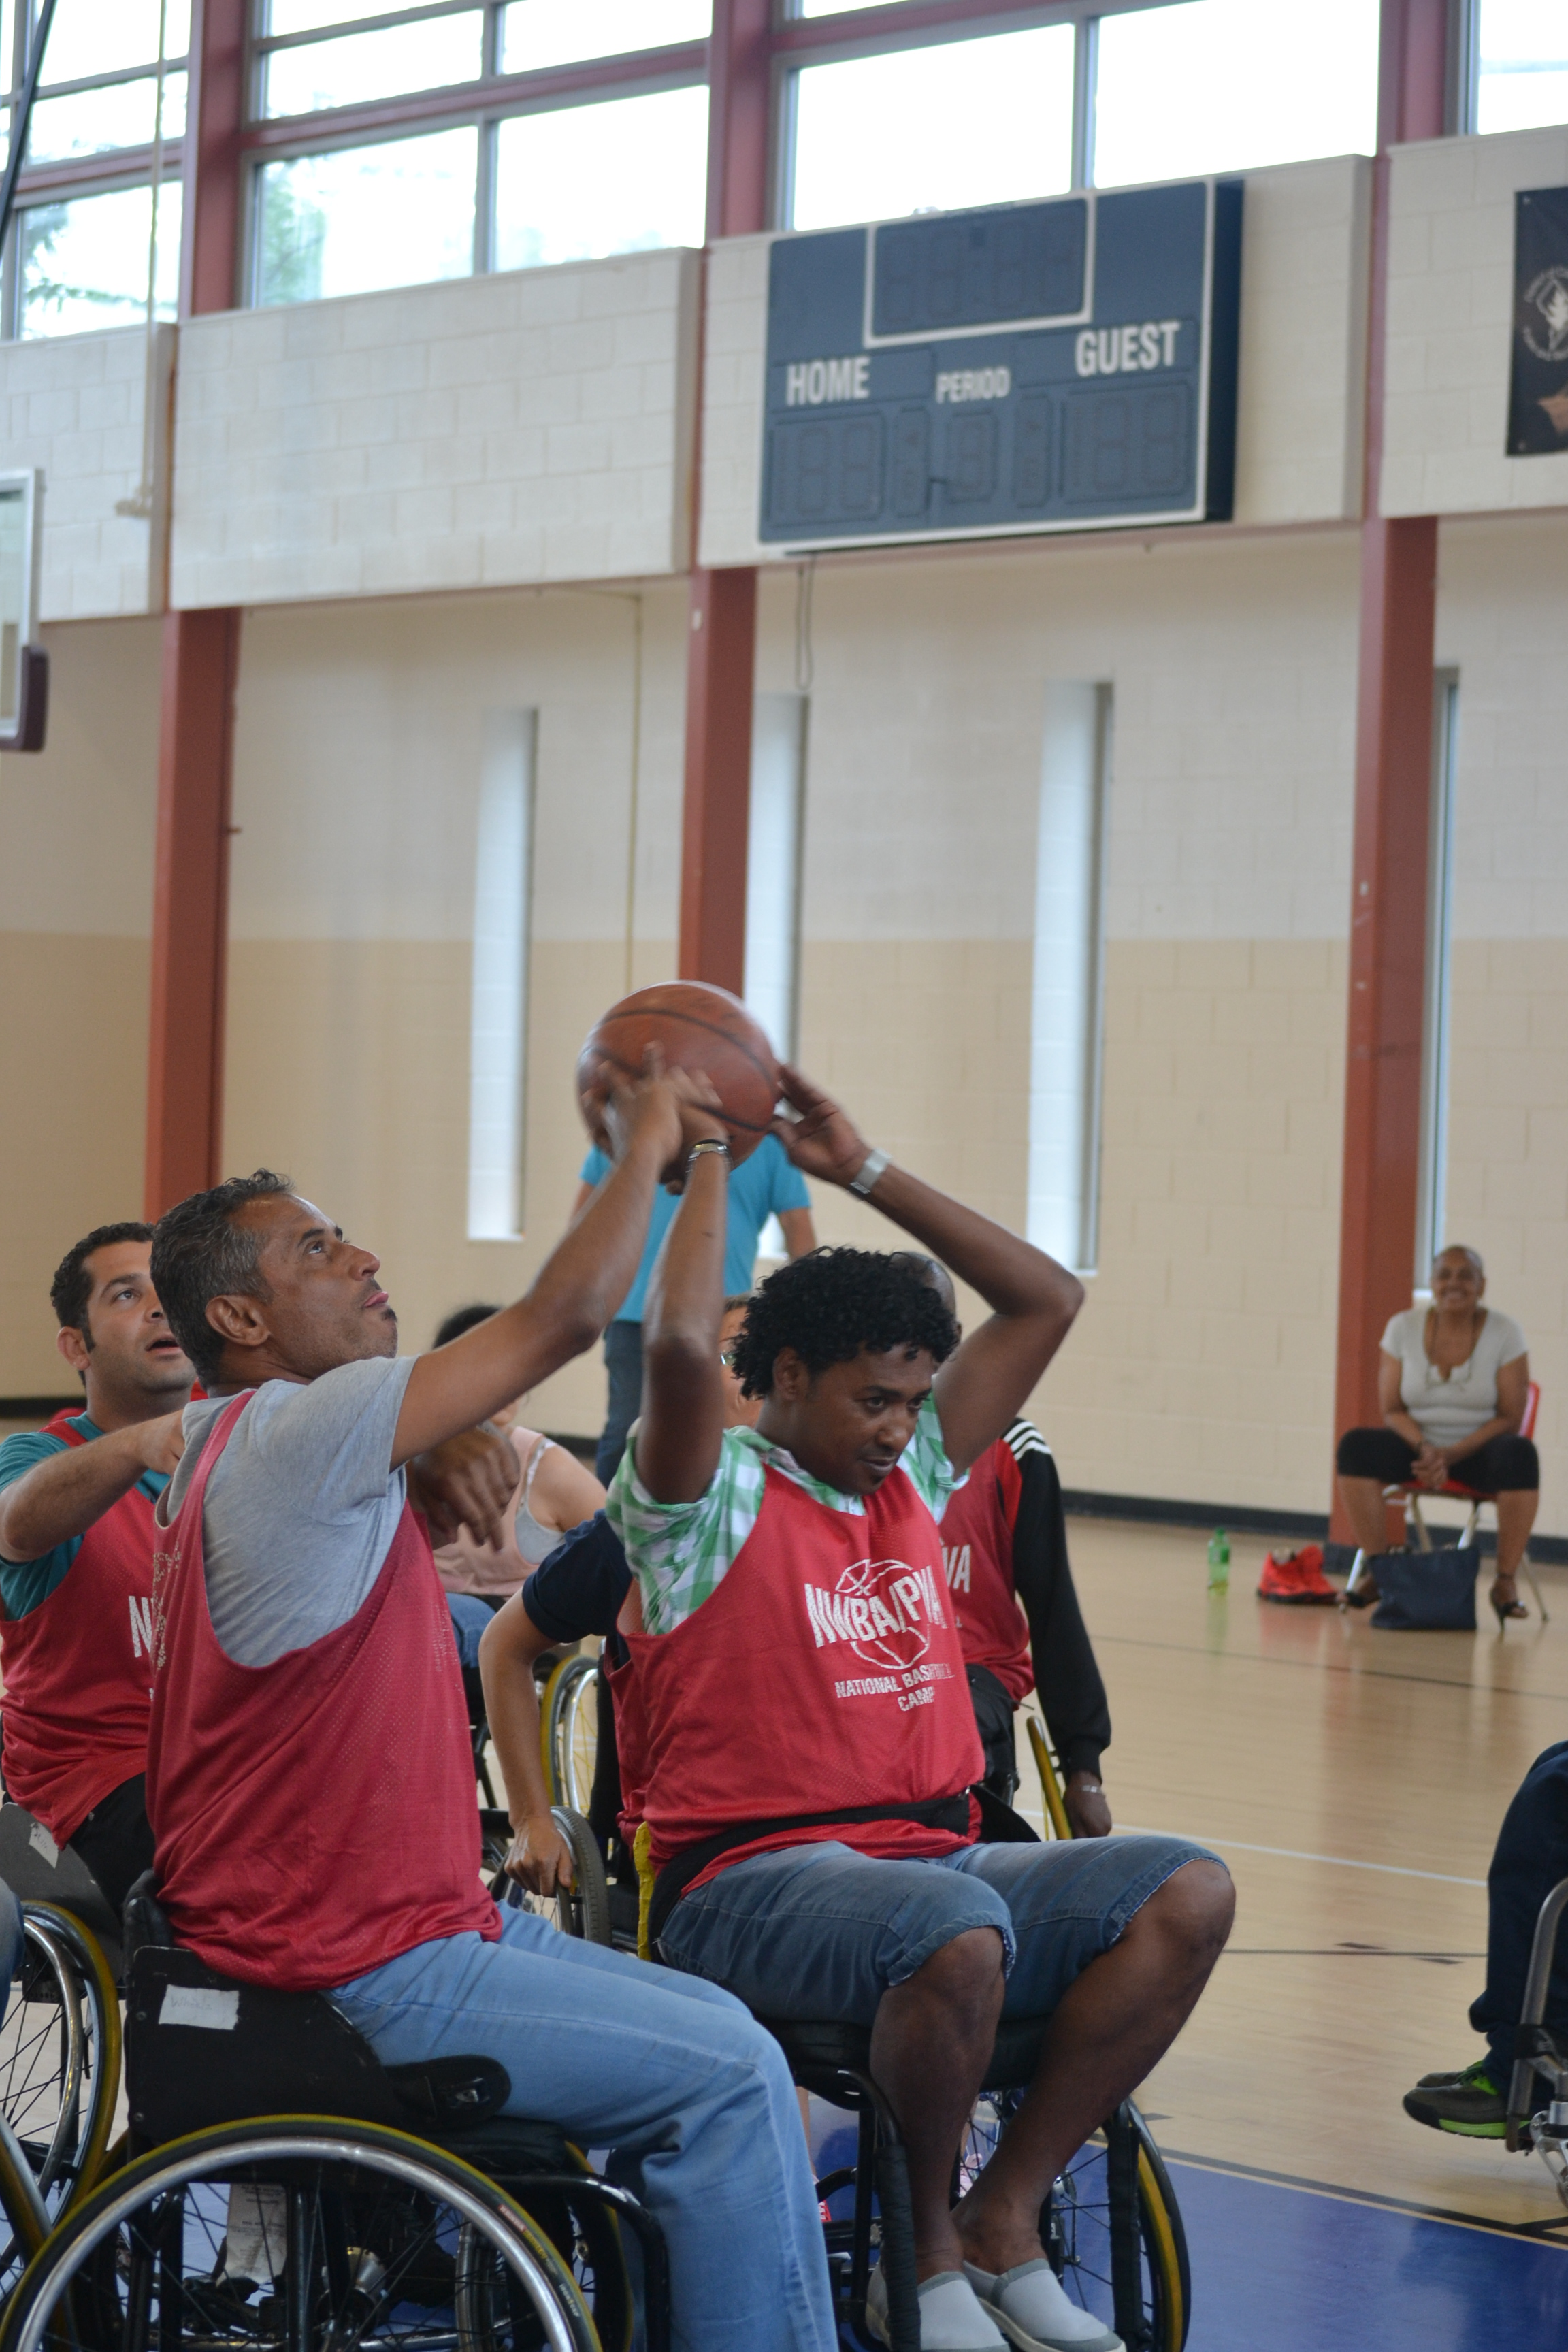 The group tries a new sport, wheelchair basketball, and furthers their teamwork skills at the same time.